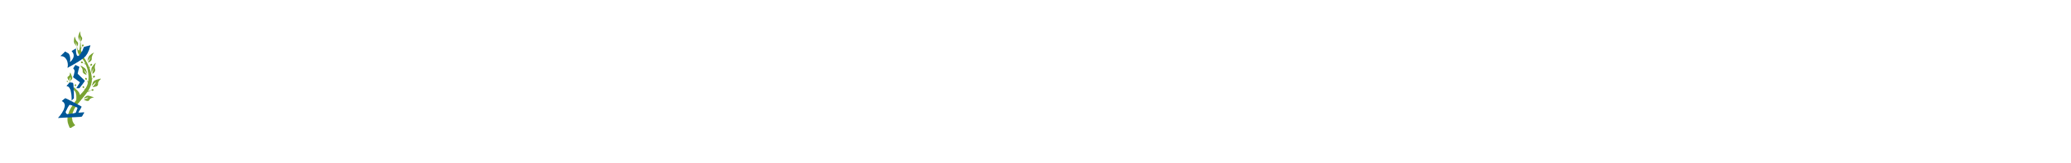 Temple Beth Sholom - A Jewish Center of Life, Learning and Connections in Orange County, CA